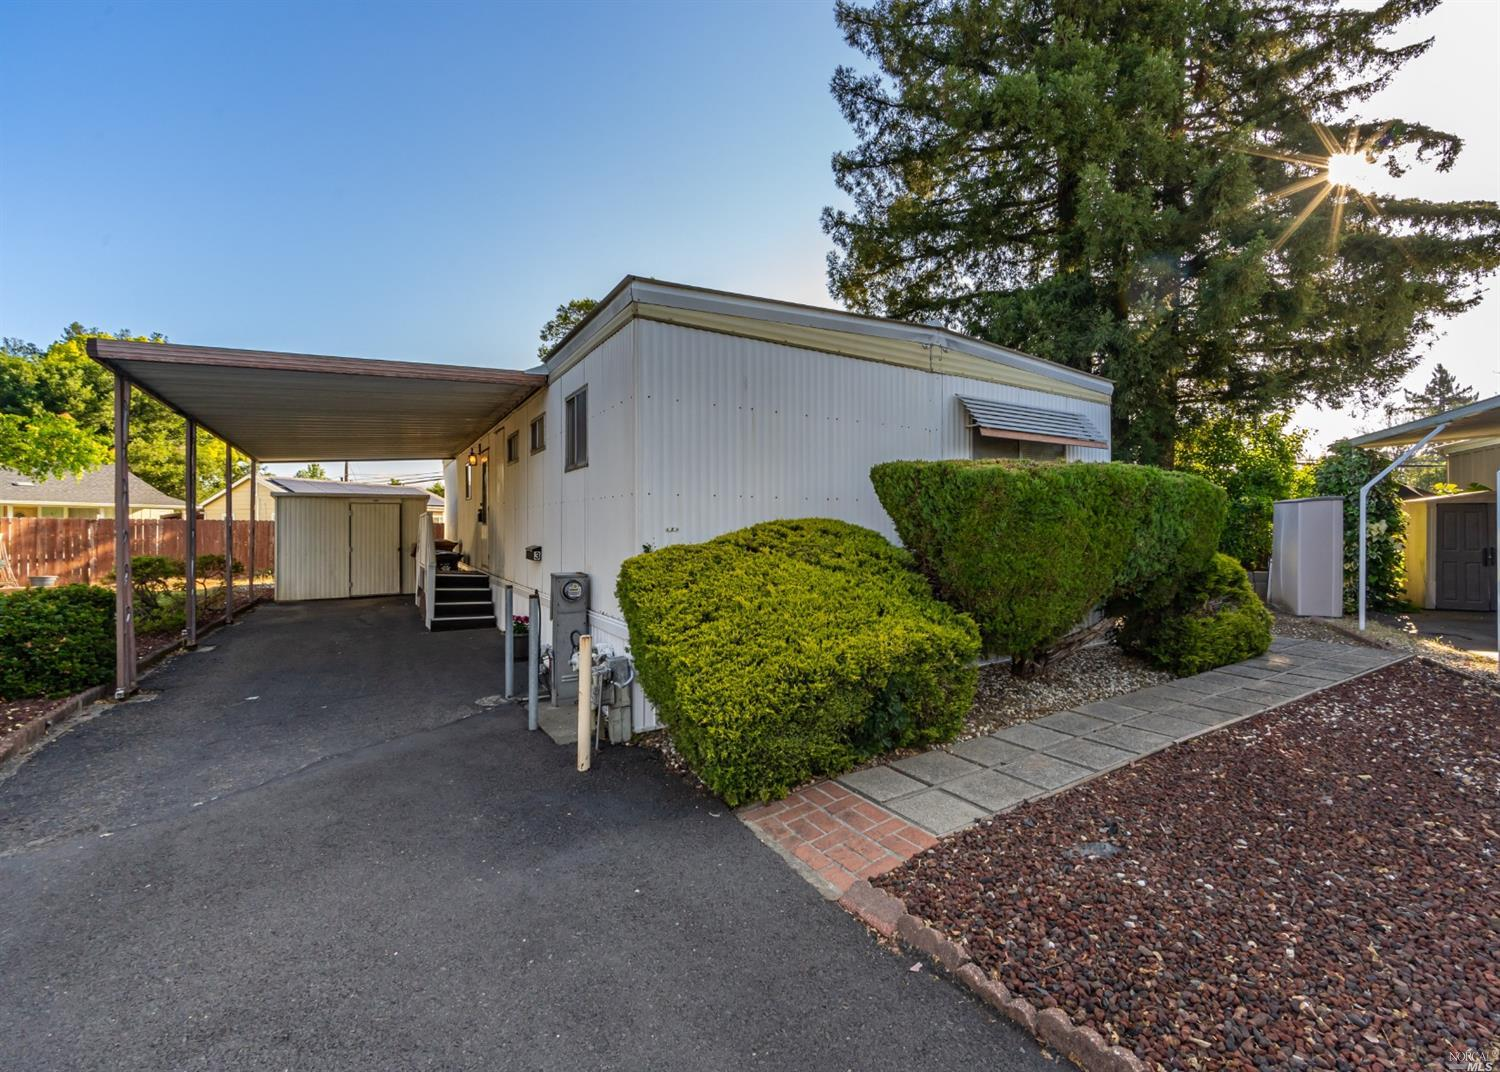 Welcome to 3 Newell Cir, single level 2 bedroom 2 bathroom mobile home located in a family park.  Co